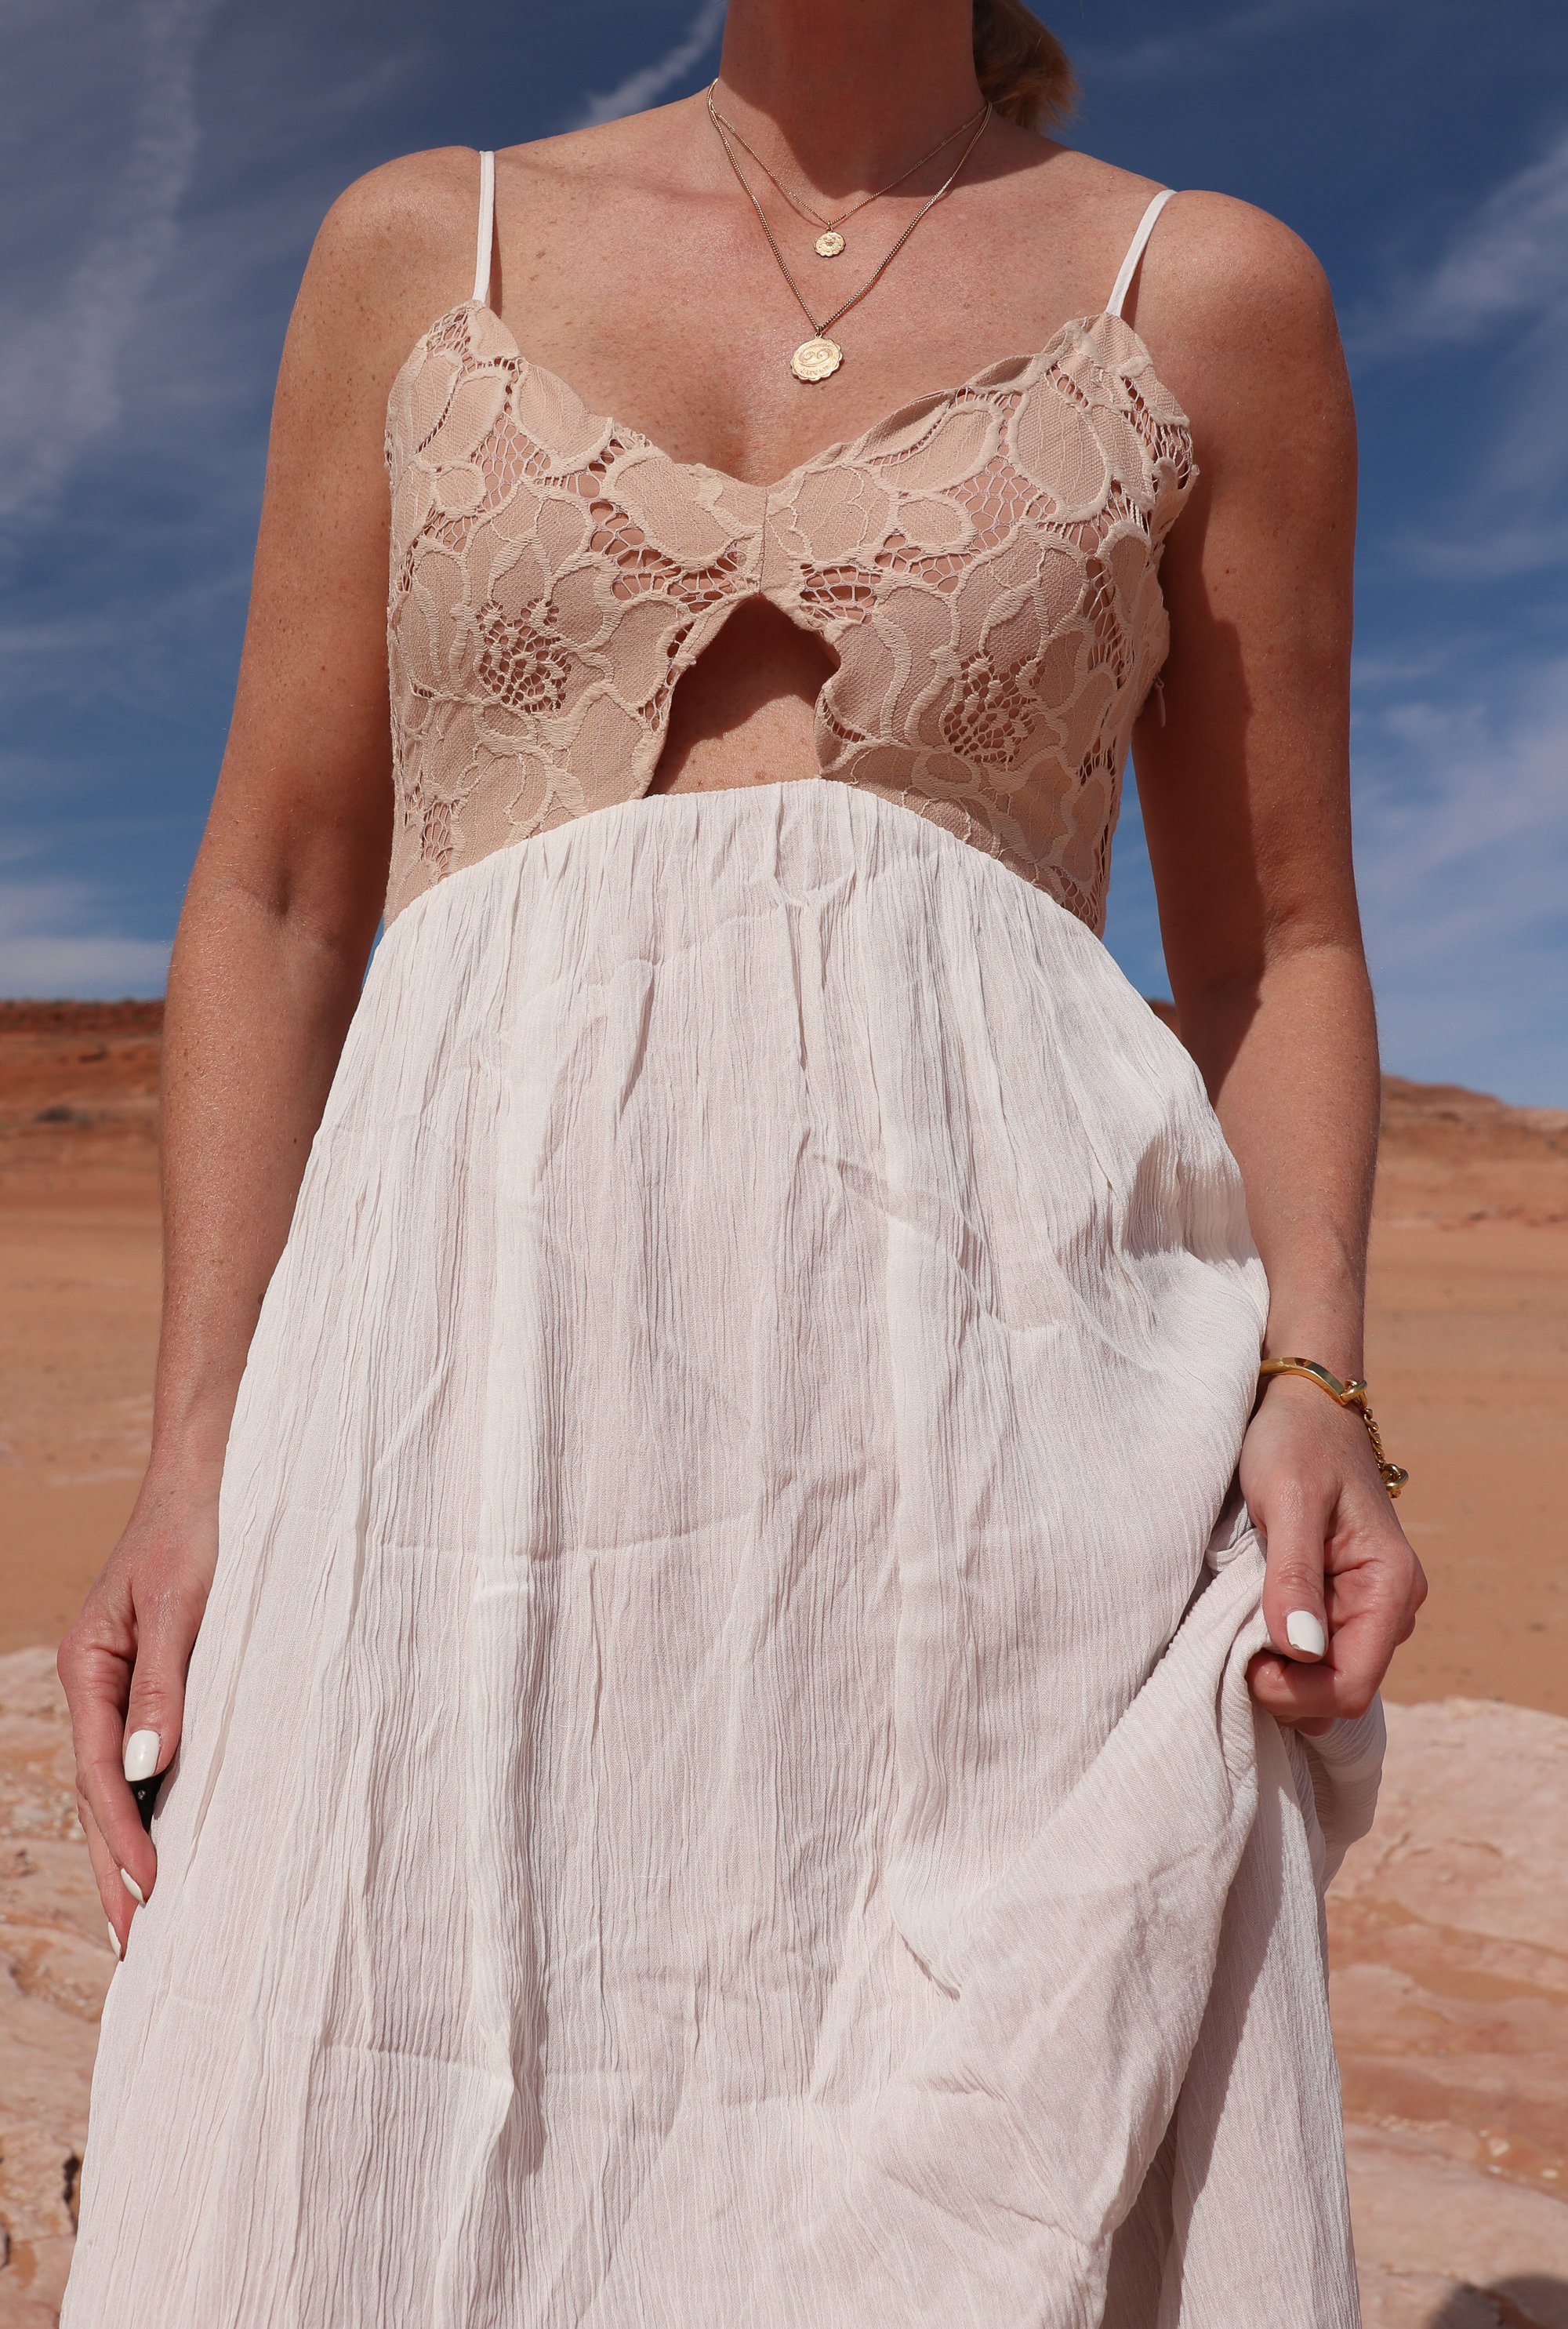 lace tularosa maxi dress worn by fashion blogger with gold necklaces